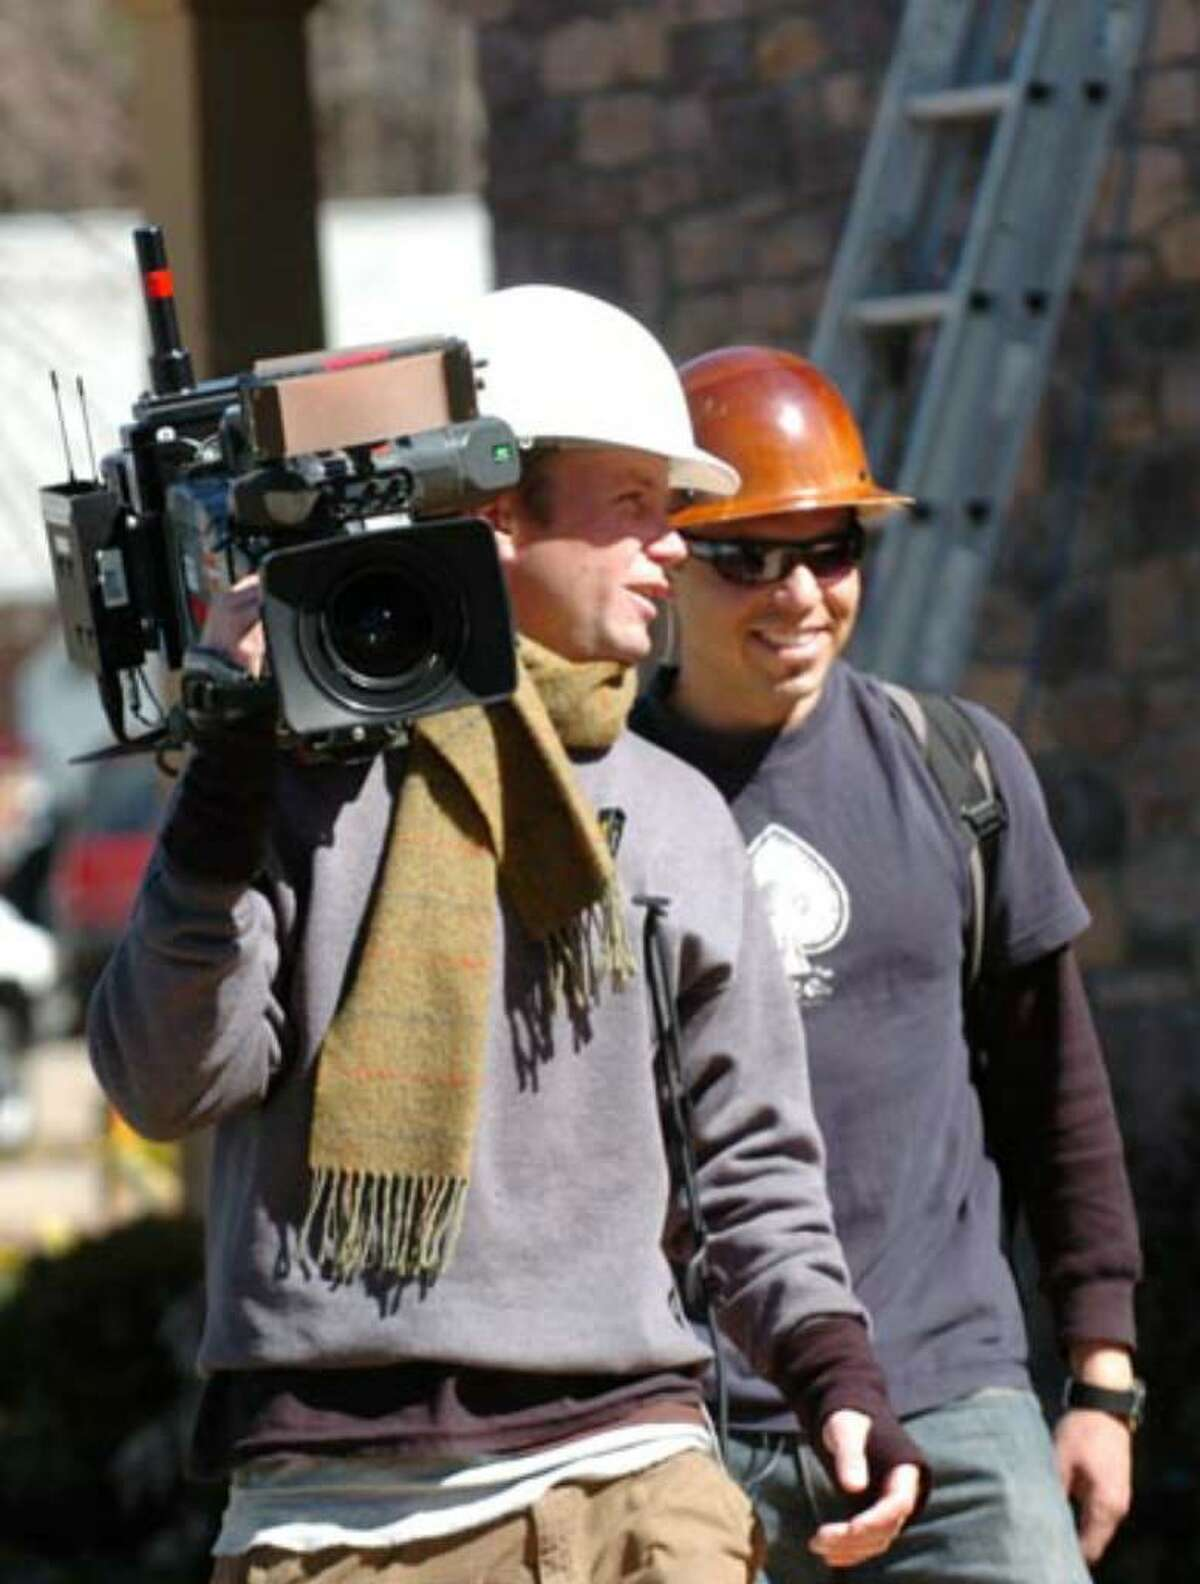 The video crew works on the scenes at the Oatman's new home on Wednesday, March 28.